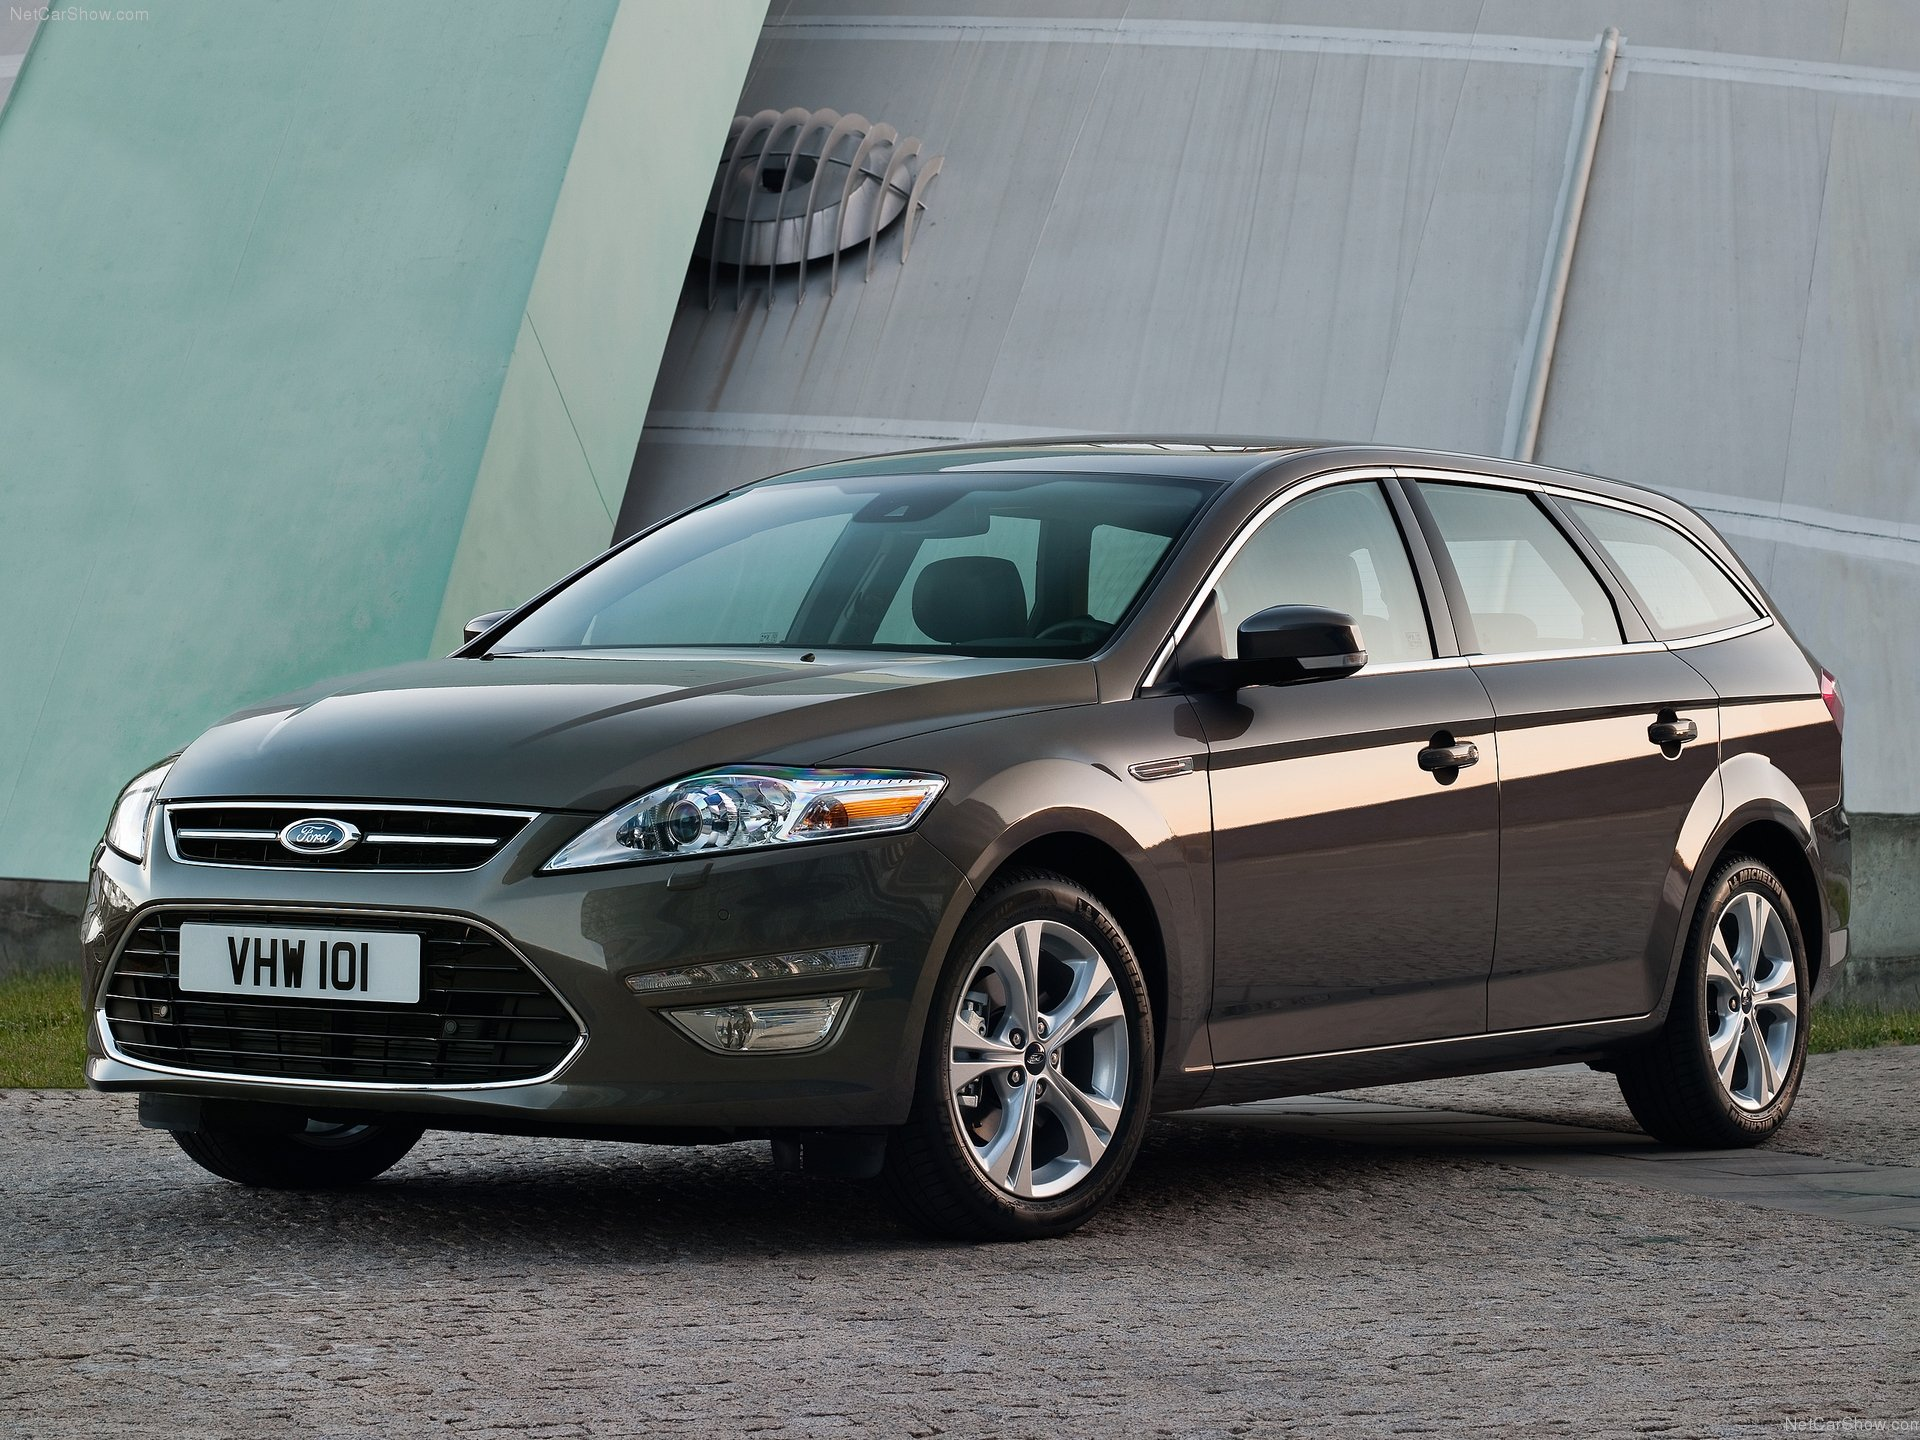 Ford Mondeo Wagon: 12 фото